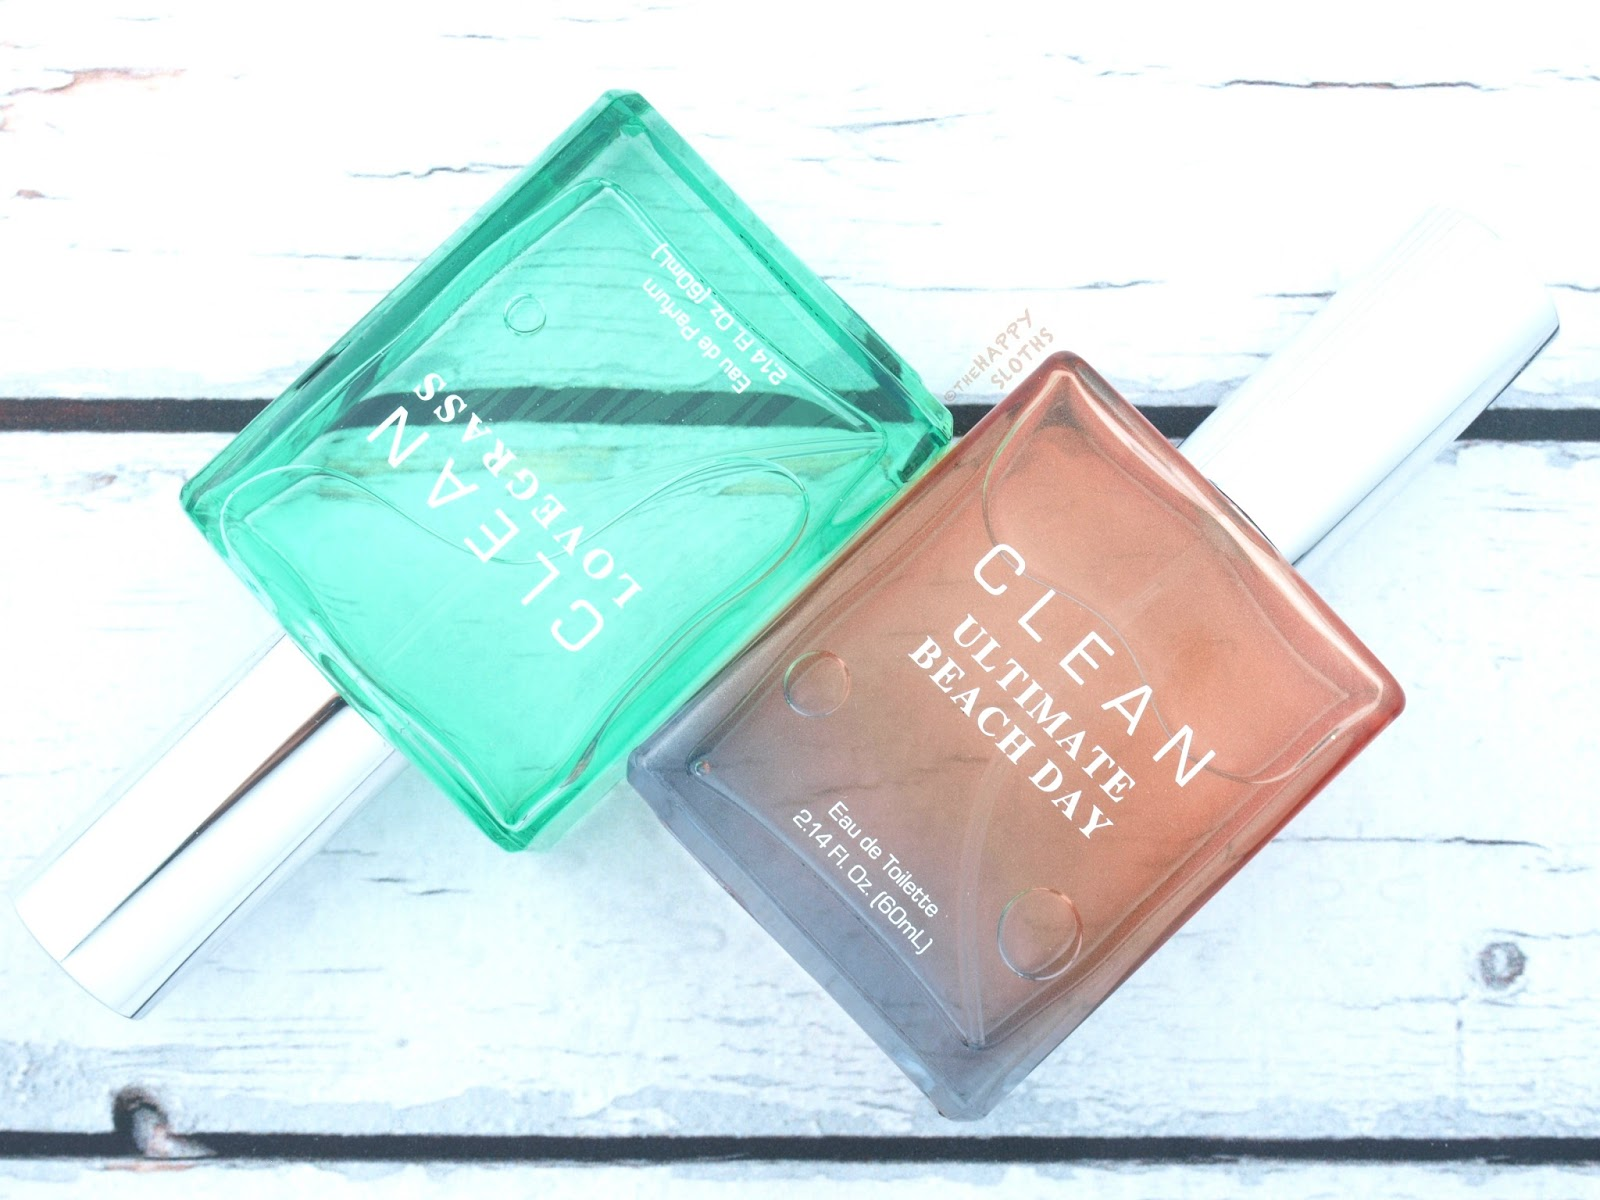 Clean Ultimate Beach Day Eau de Toilette & Lovegrass Eau de Parfum: Review